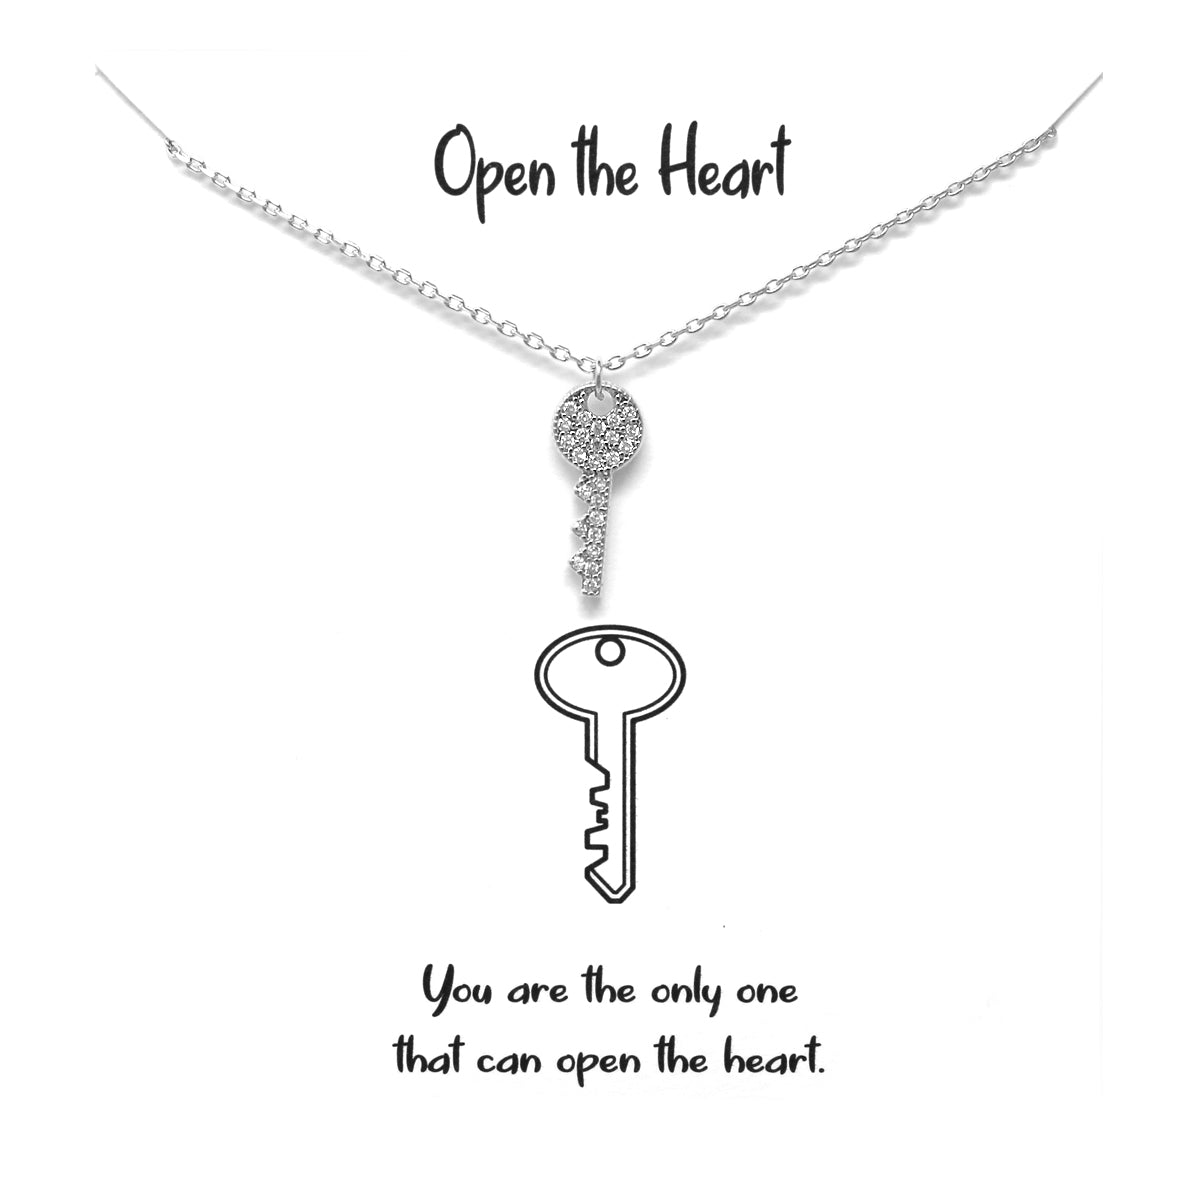 Tell Your Story: OPEN THE HEART Cubic Zirconia Pave Key Pendant Simple Chain Necklace